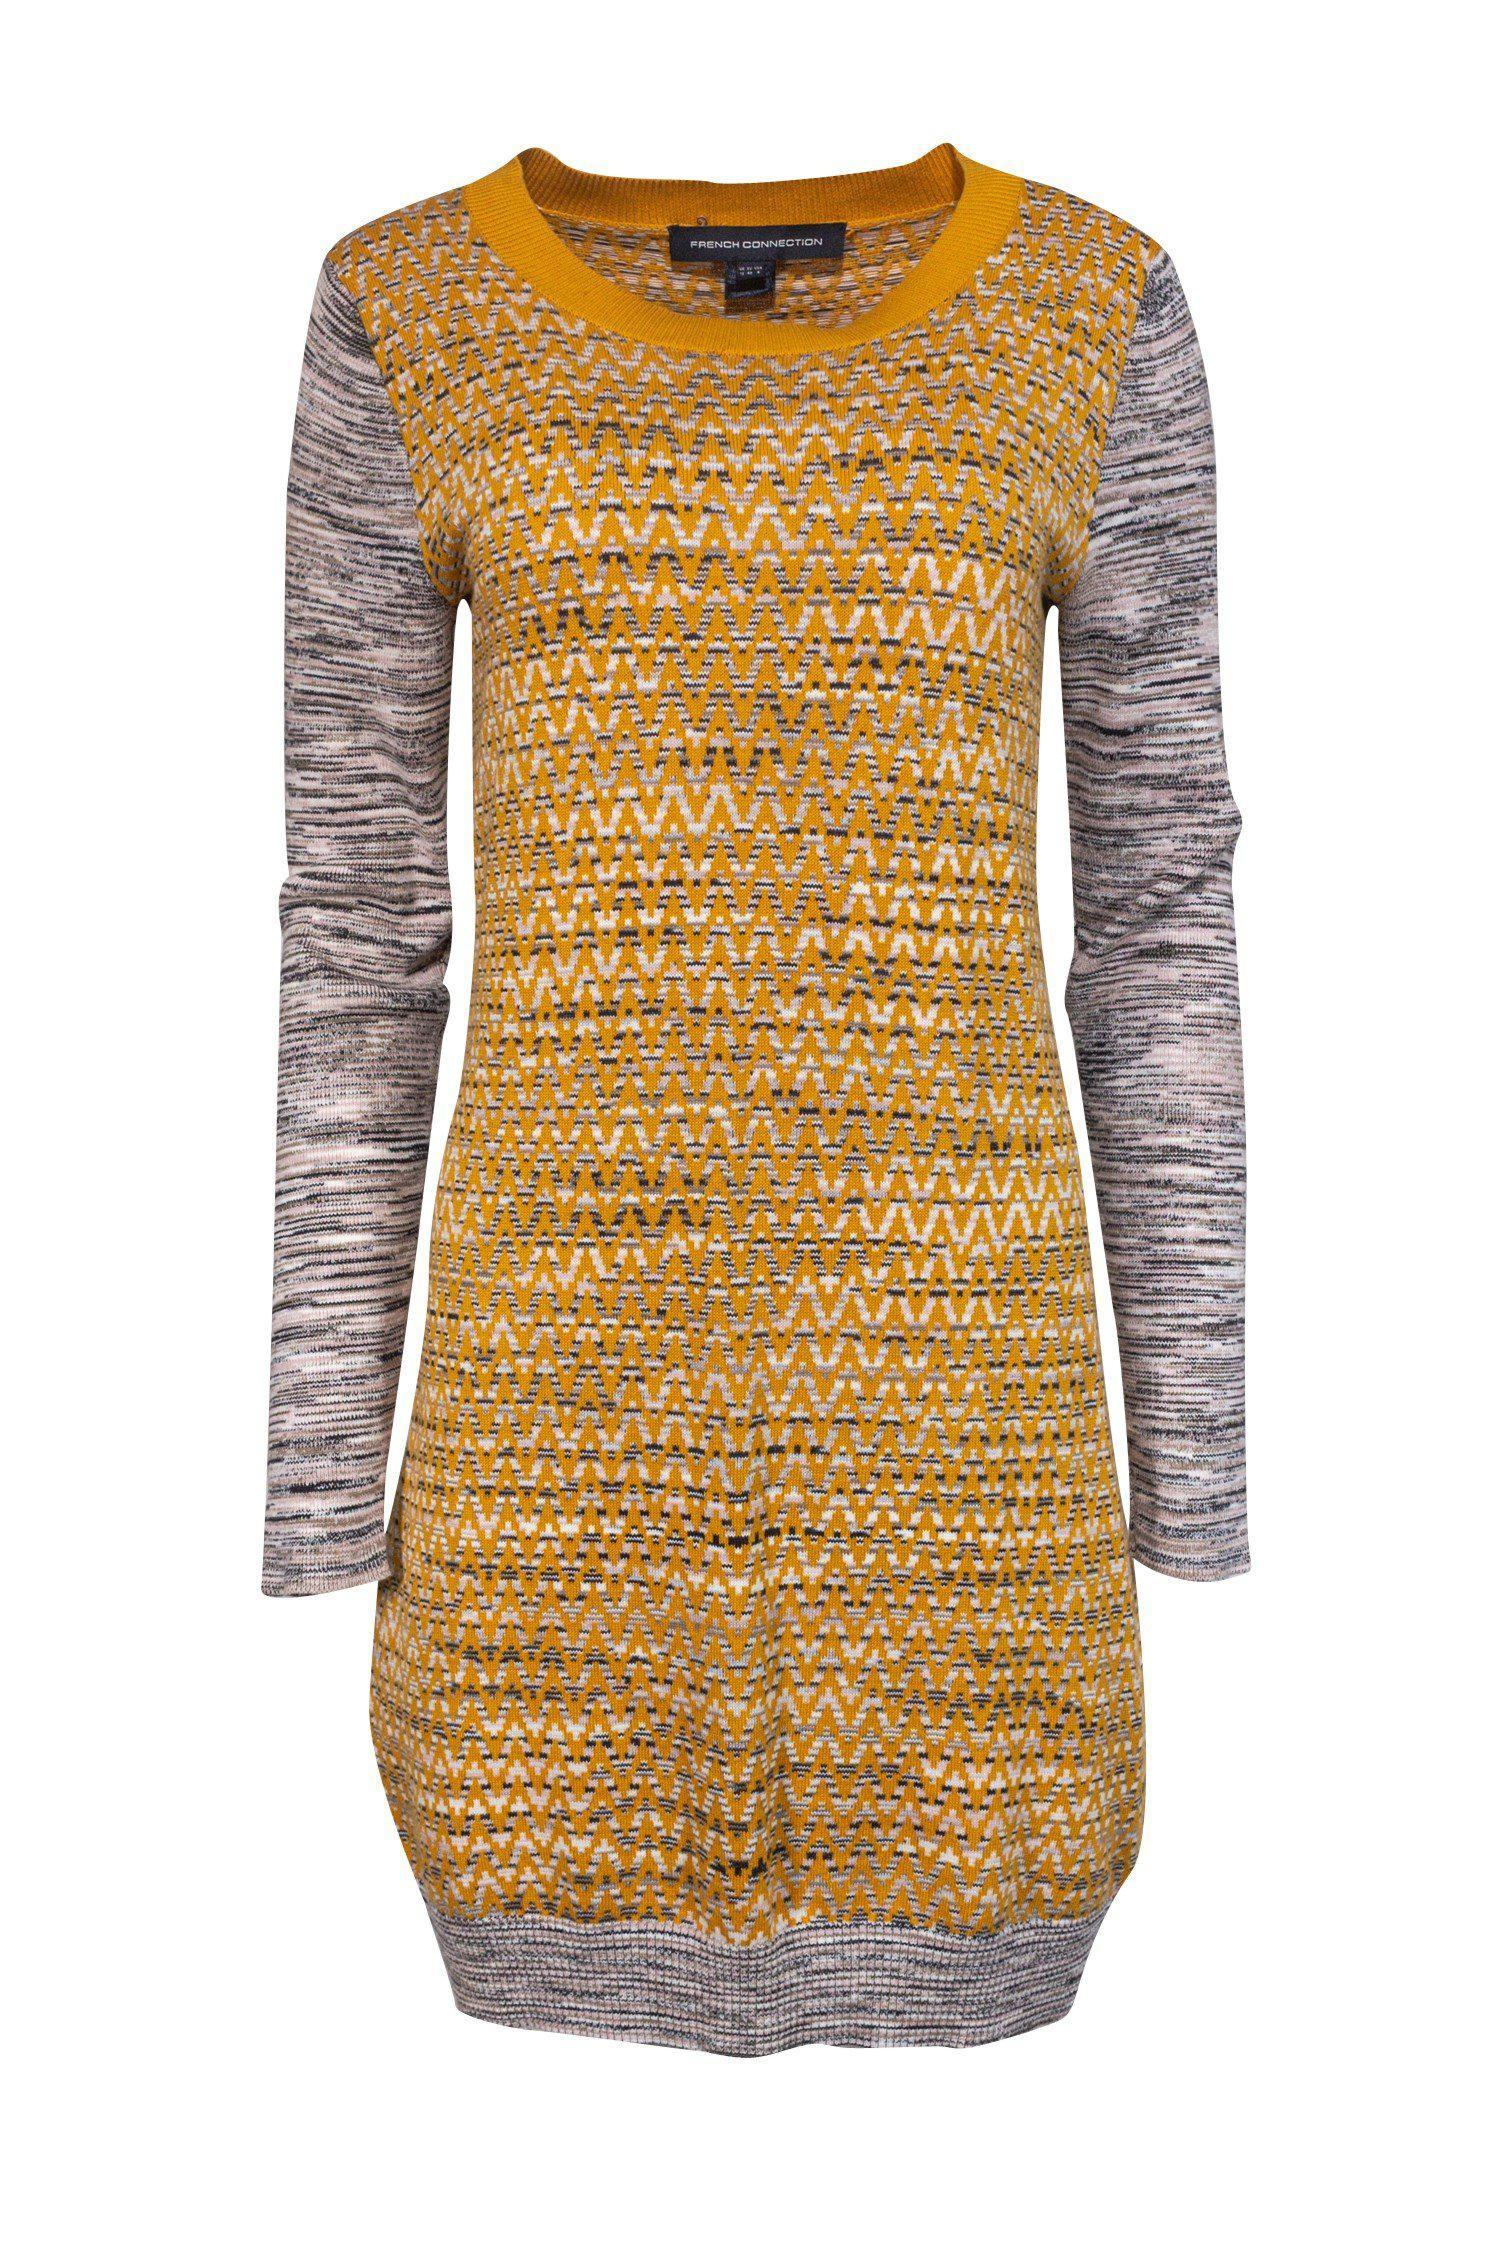 French Connection - Mustard Sweater Dress Sz 8